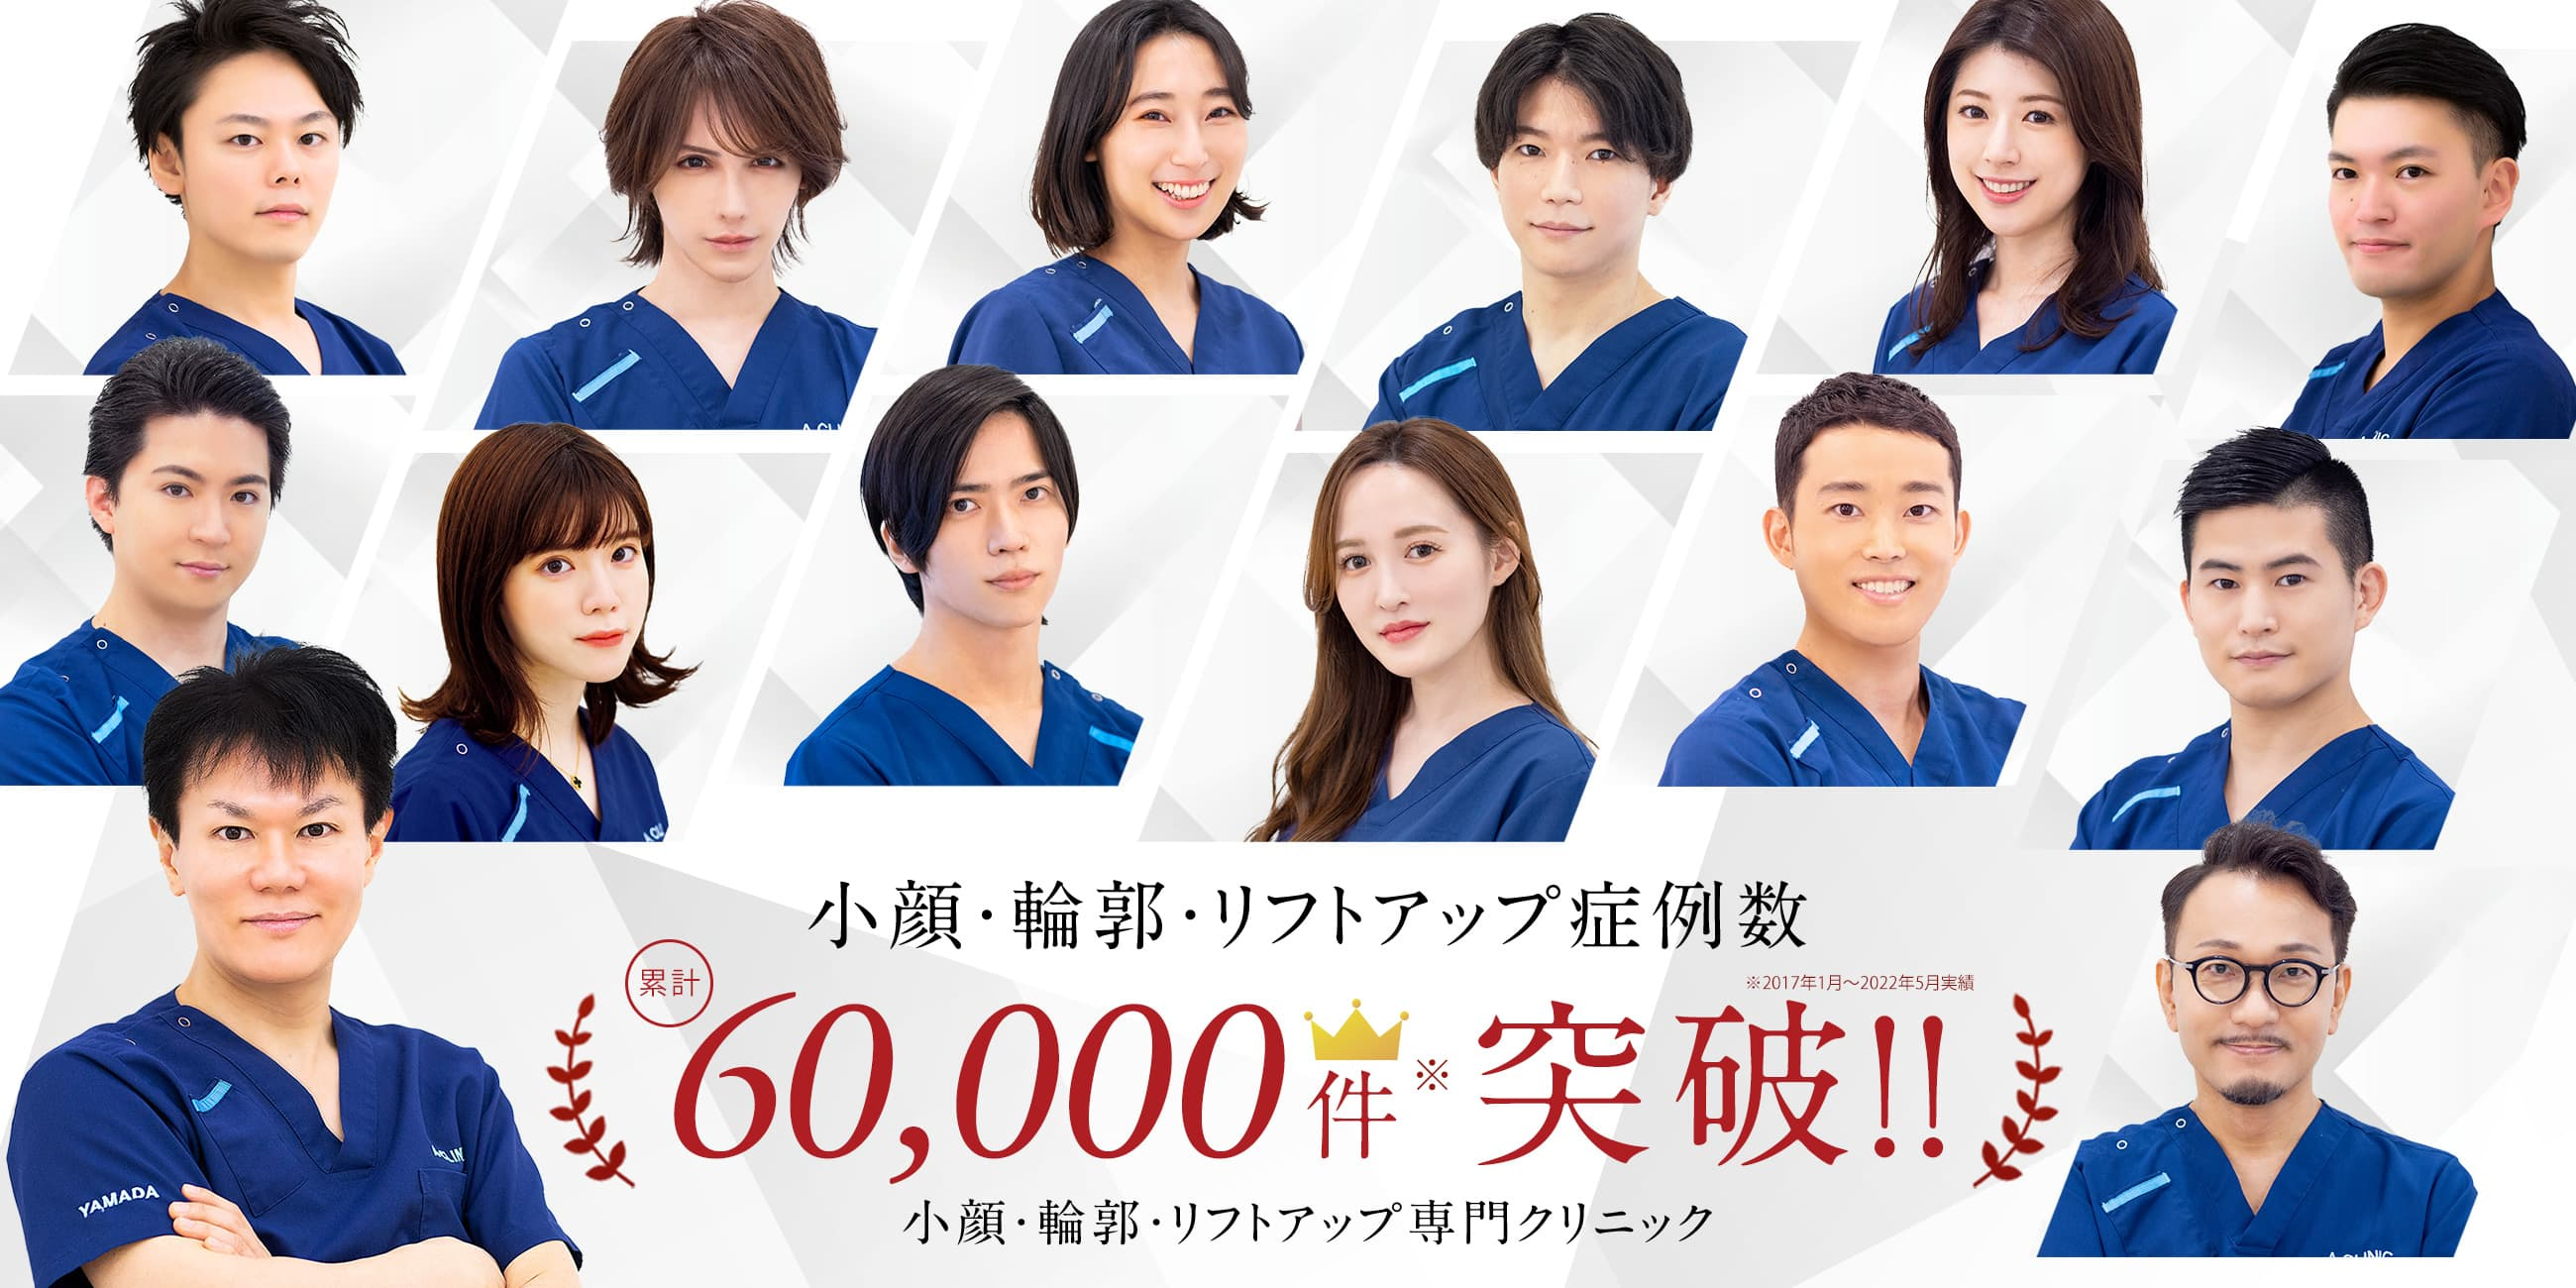 Aスレッド